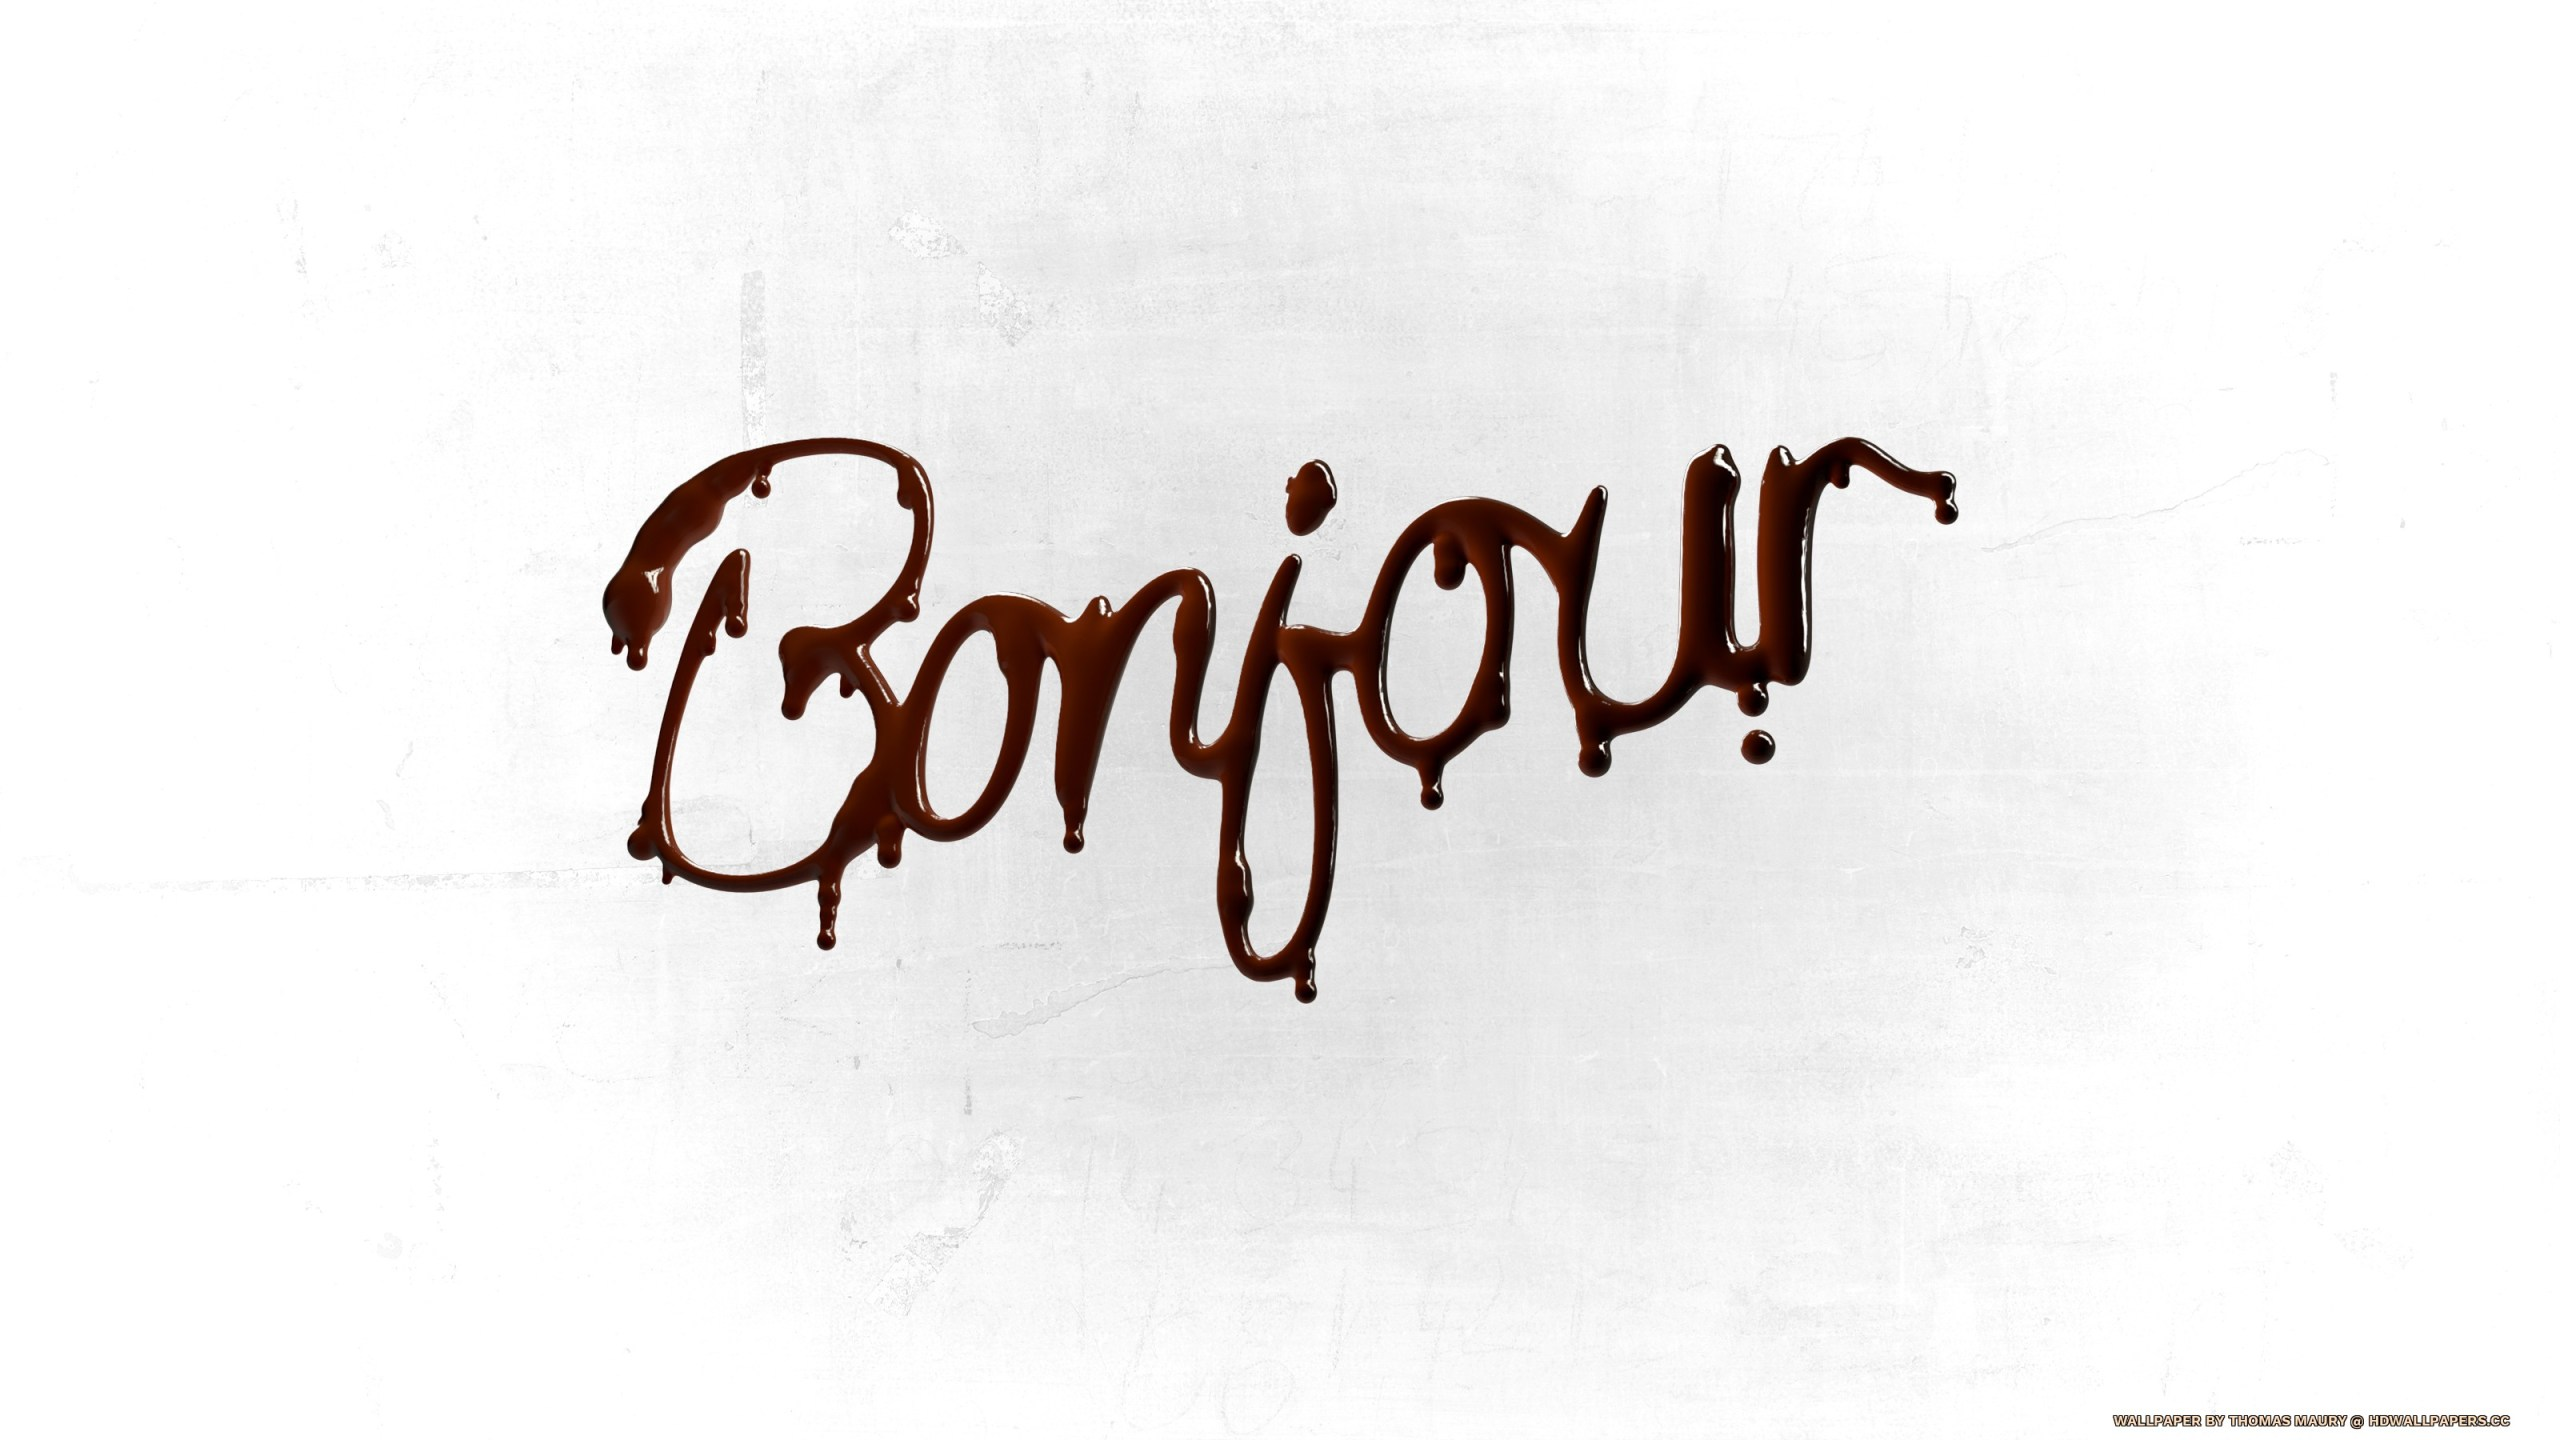 Bonjour   HD Wallpapers 2560x1440